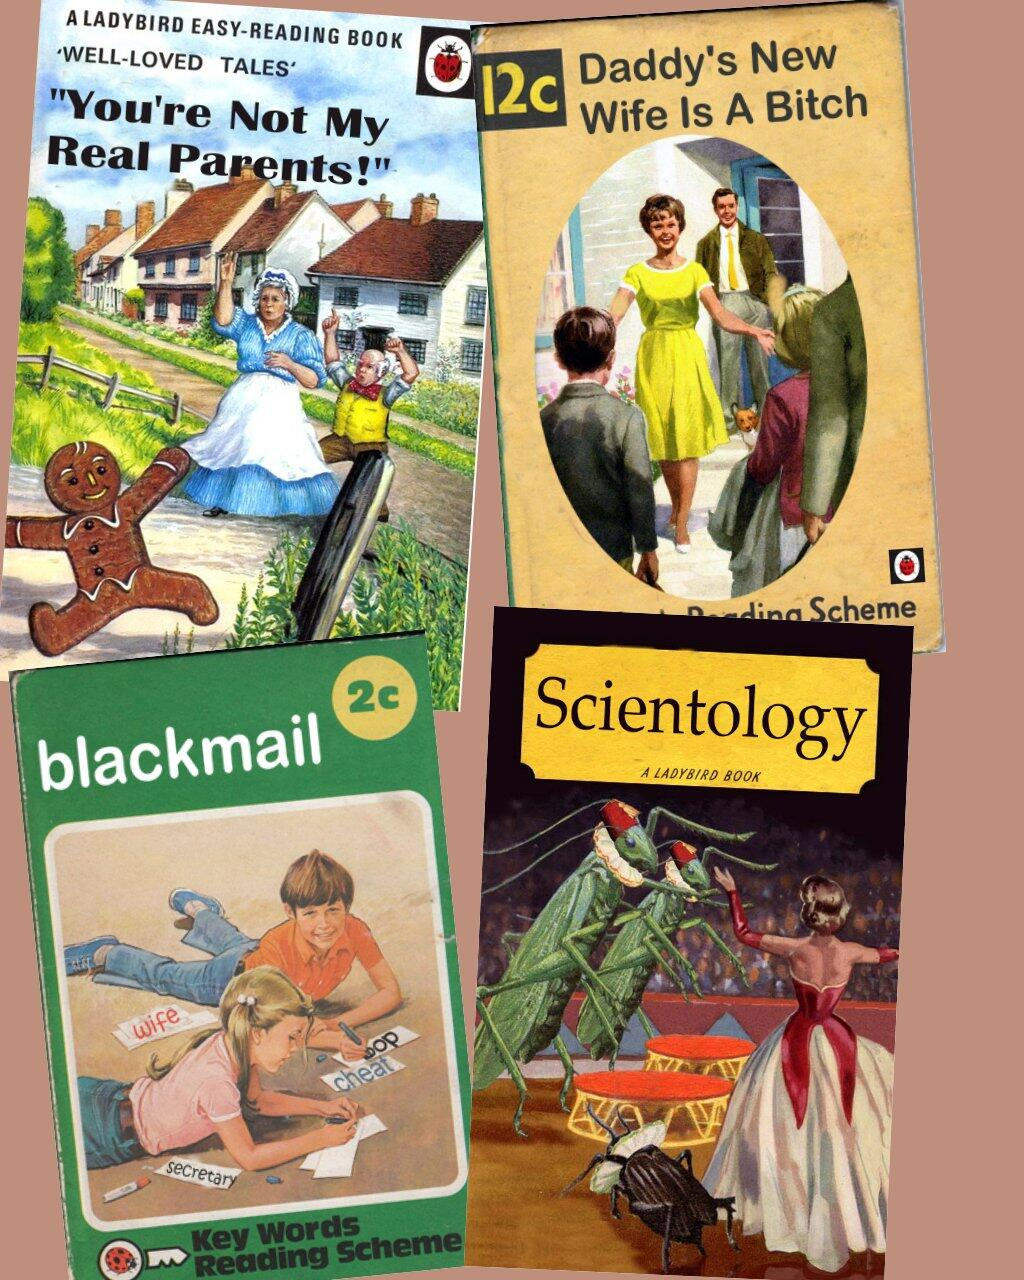 Ladybird Book Cover Pictures : Well loved children s tales from long ago the poke